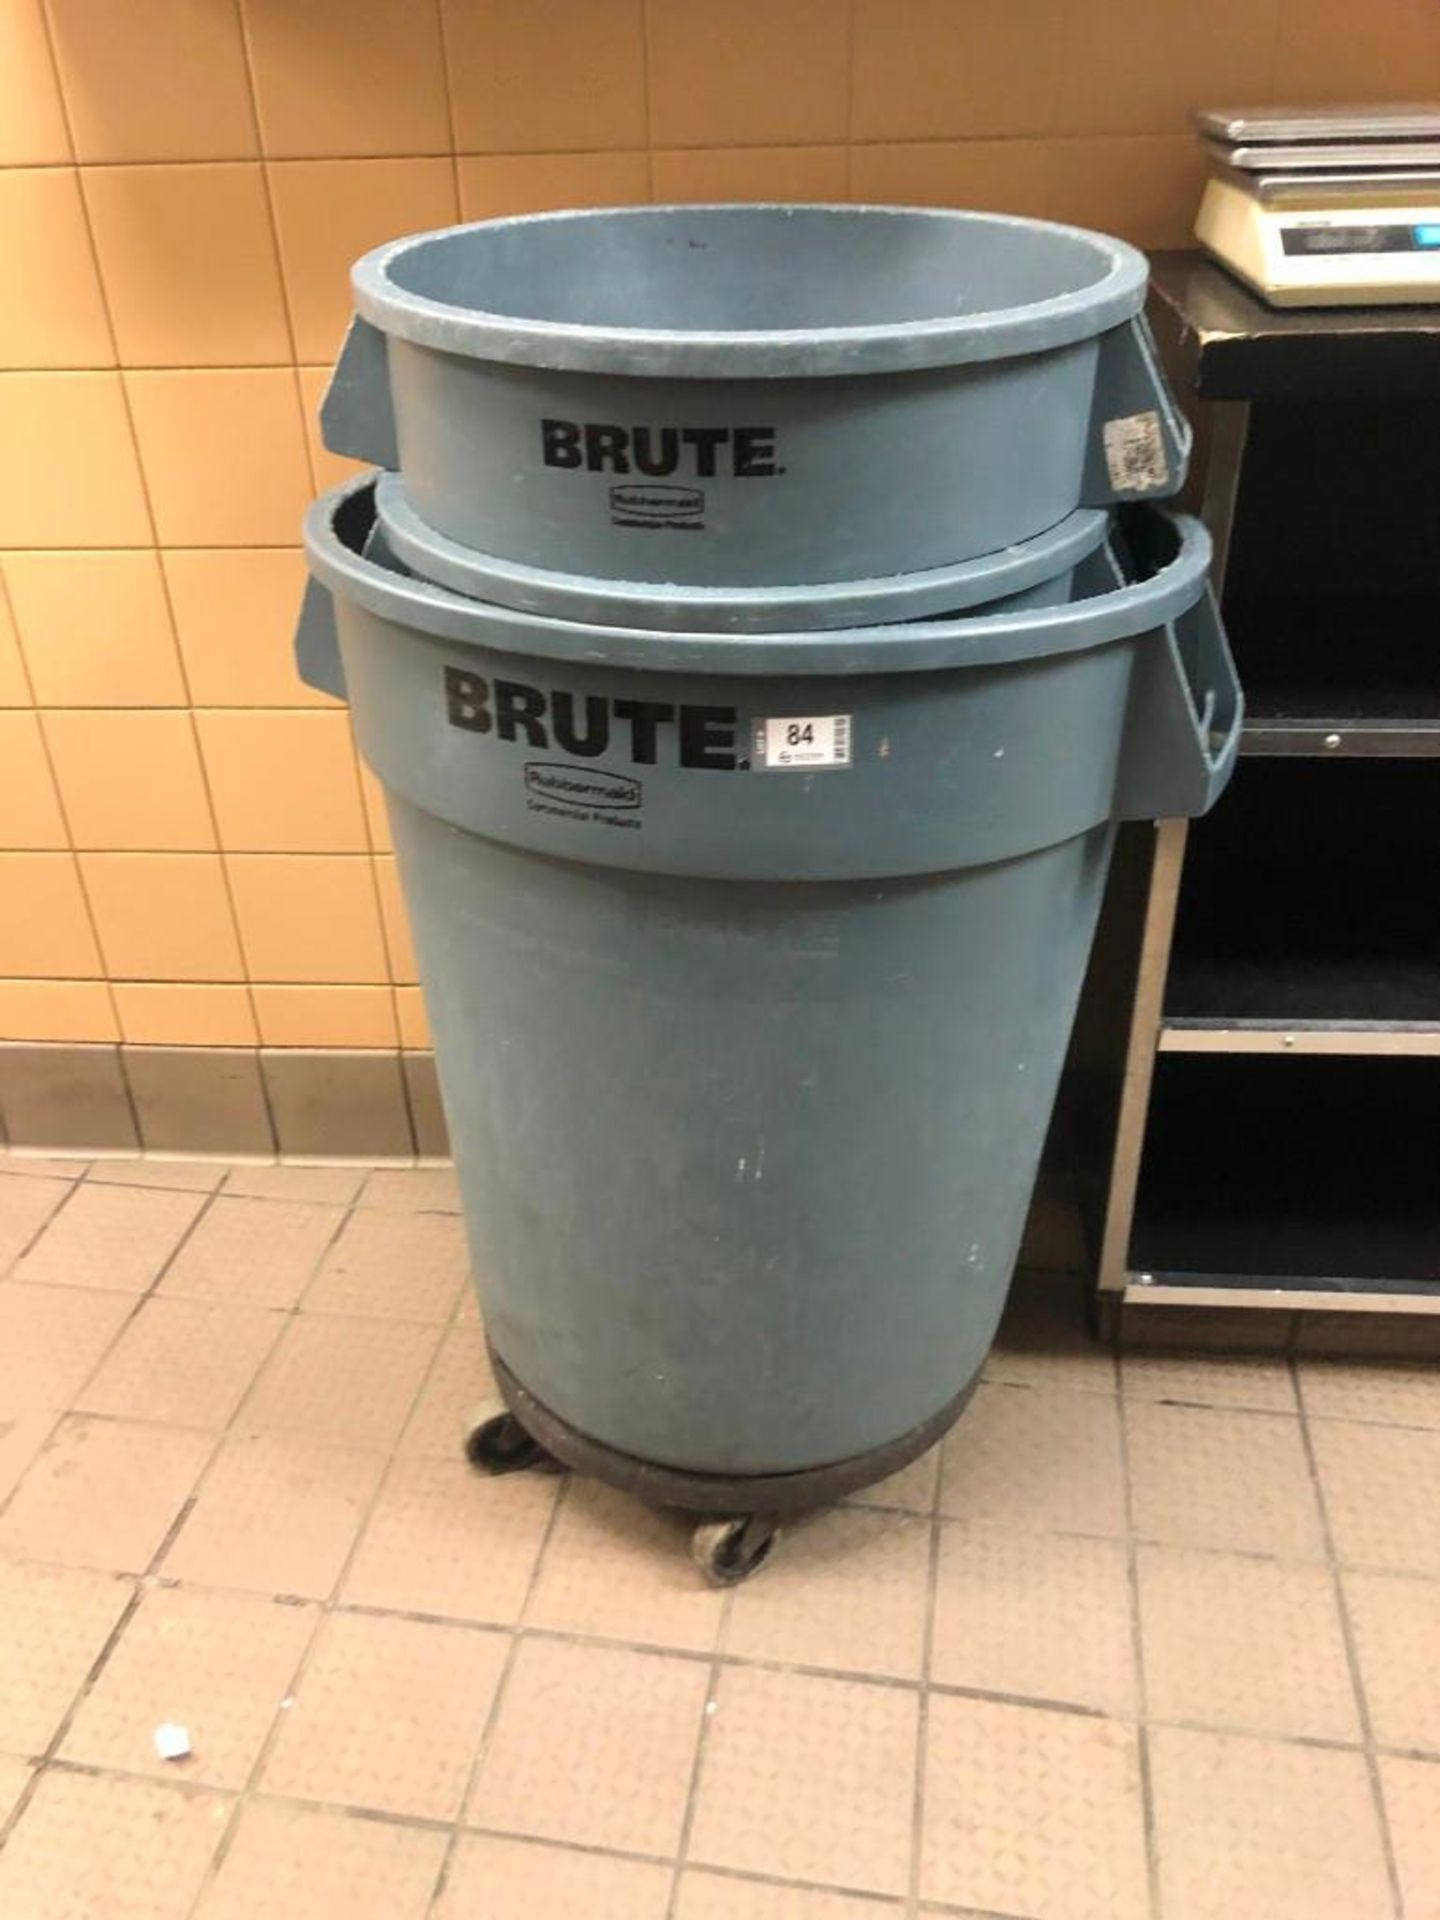 LOT OF (3) RUBBERMAID BRUTE GARBAGE BINS ONE ON DOLLY